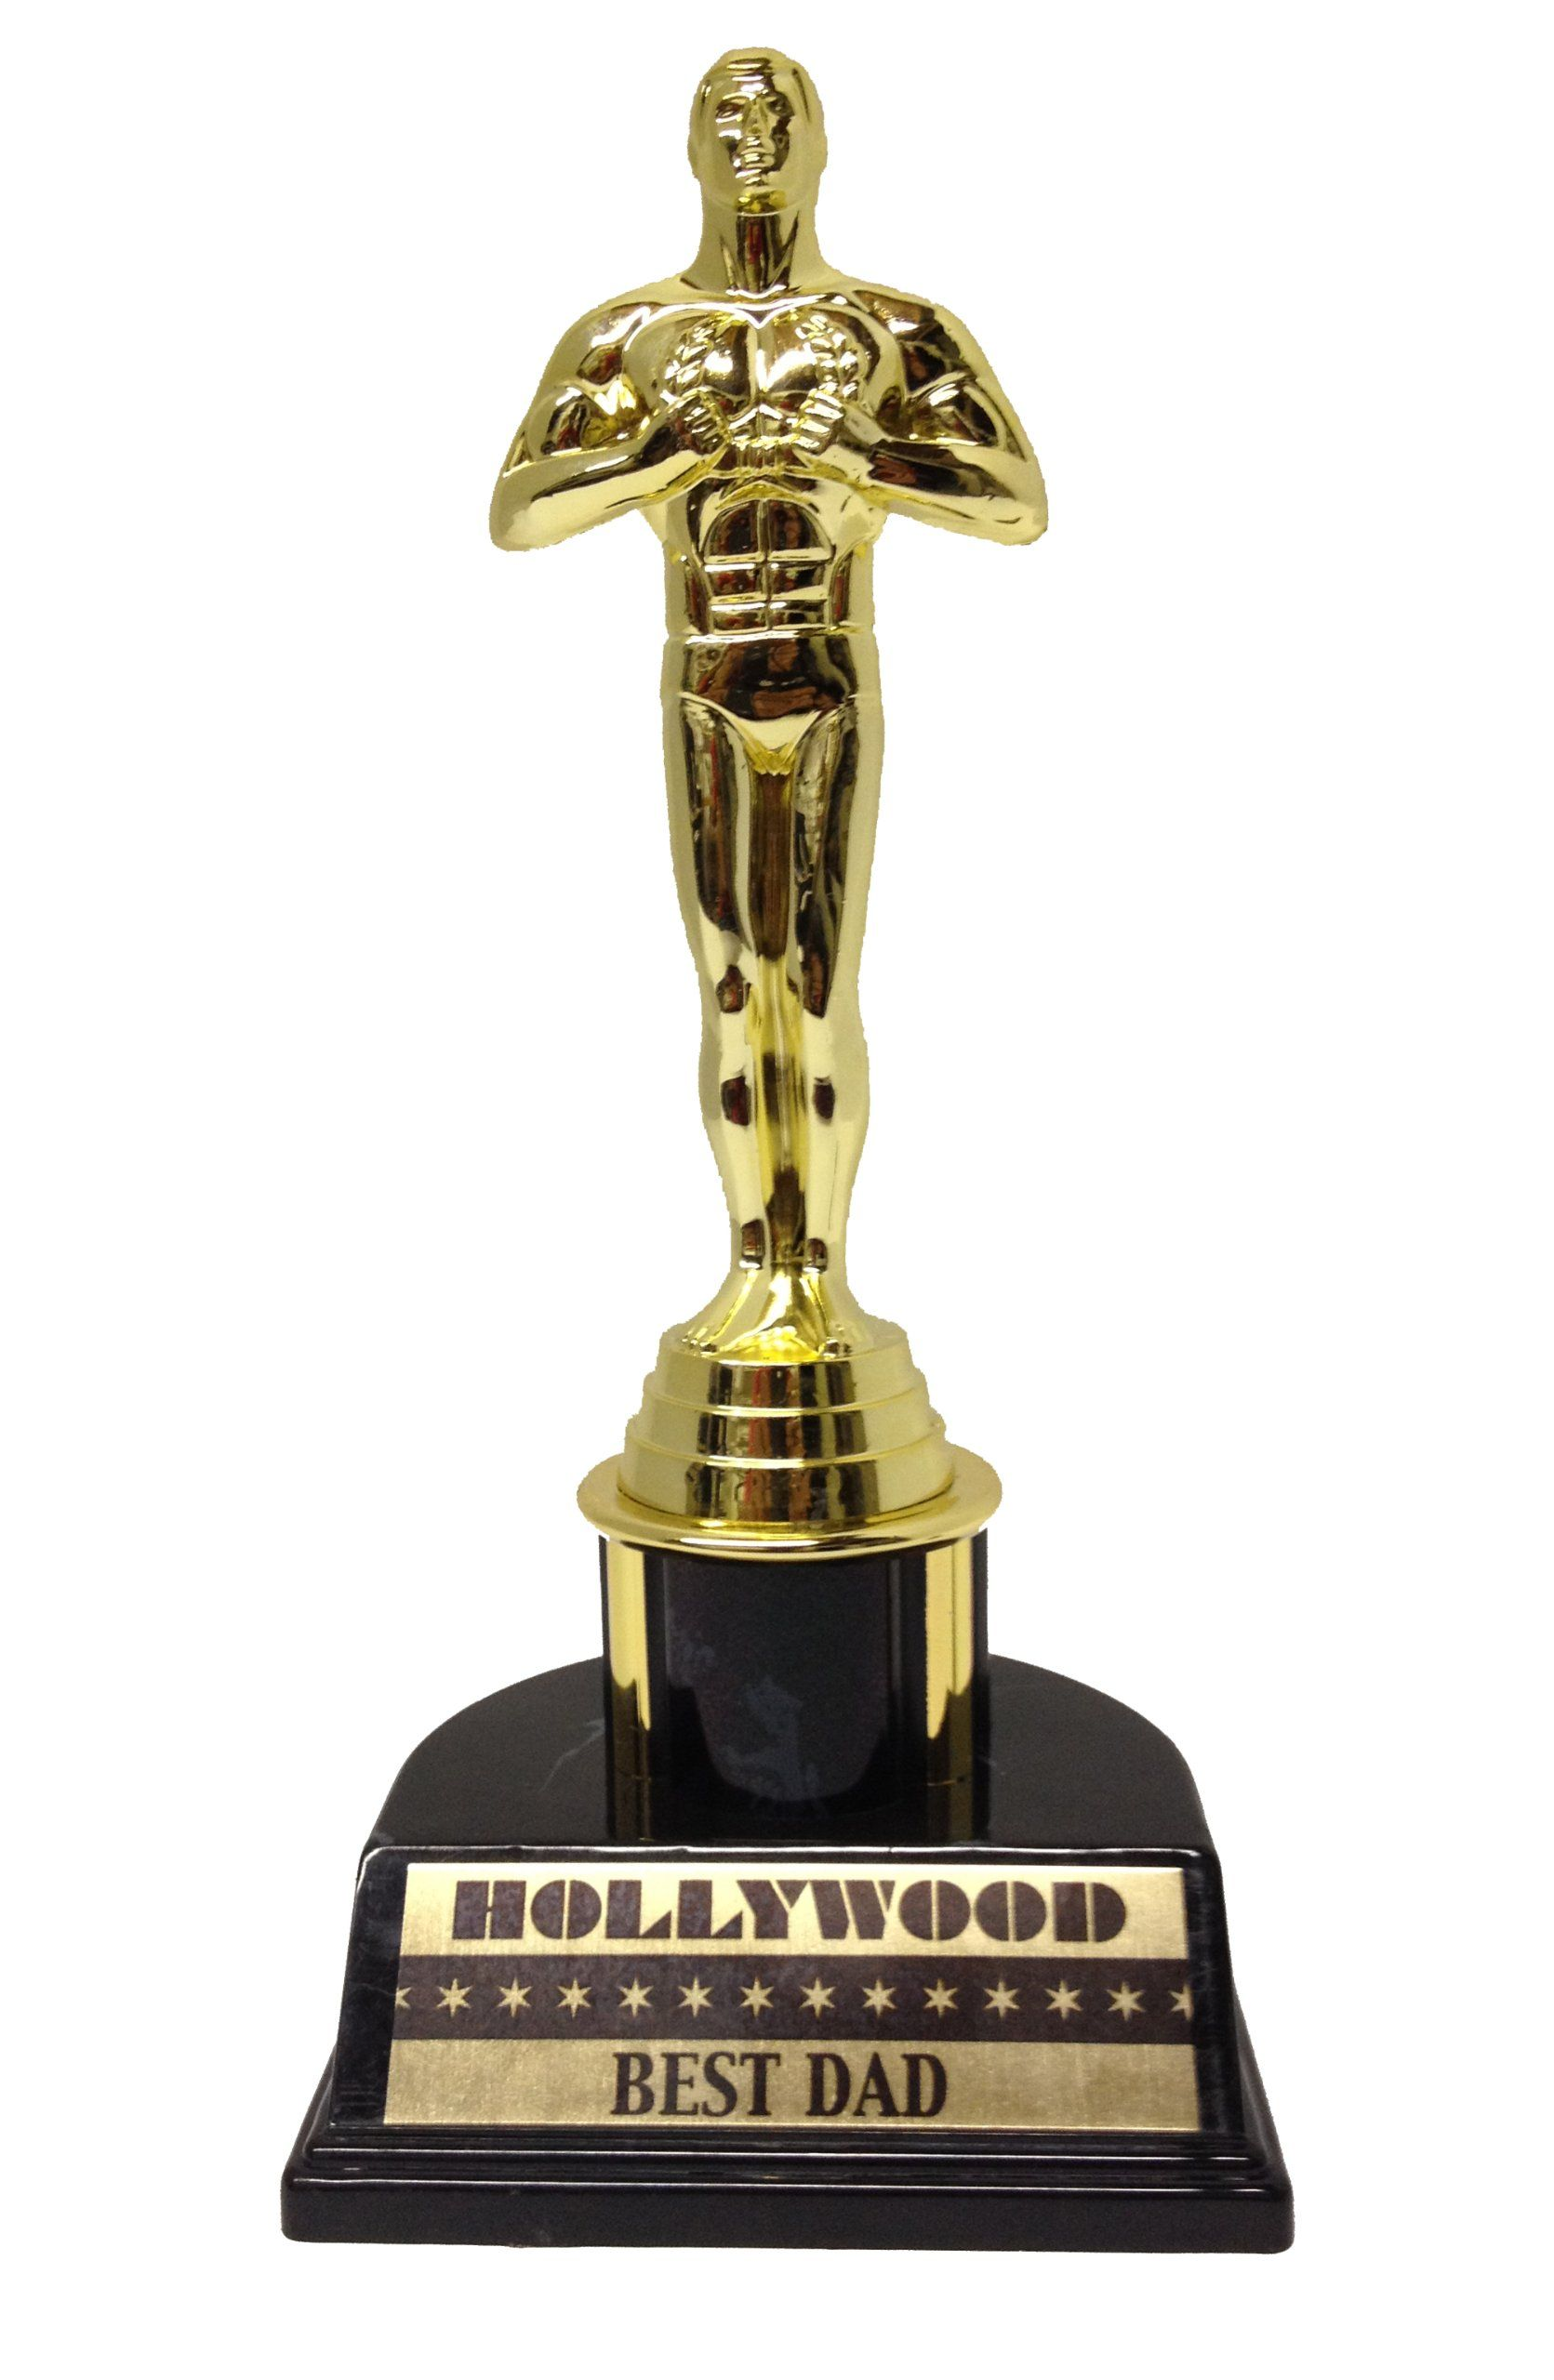 Best Dad Trophy Victory Award Dad Gifts